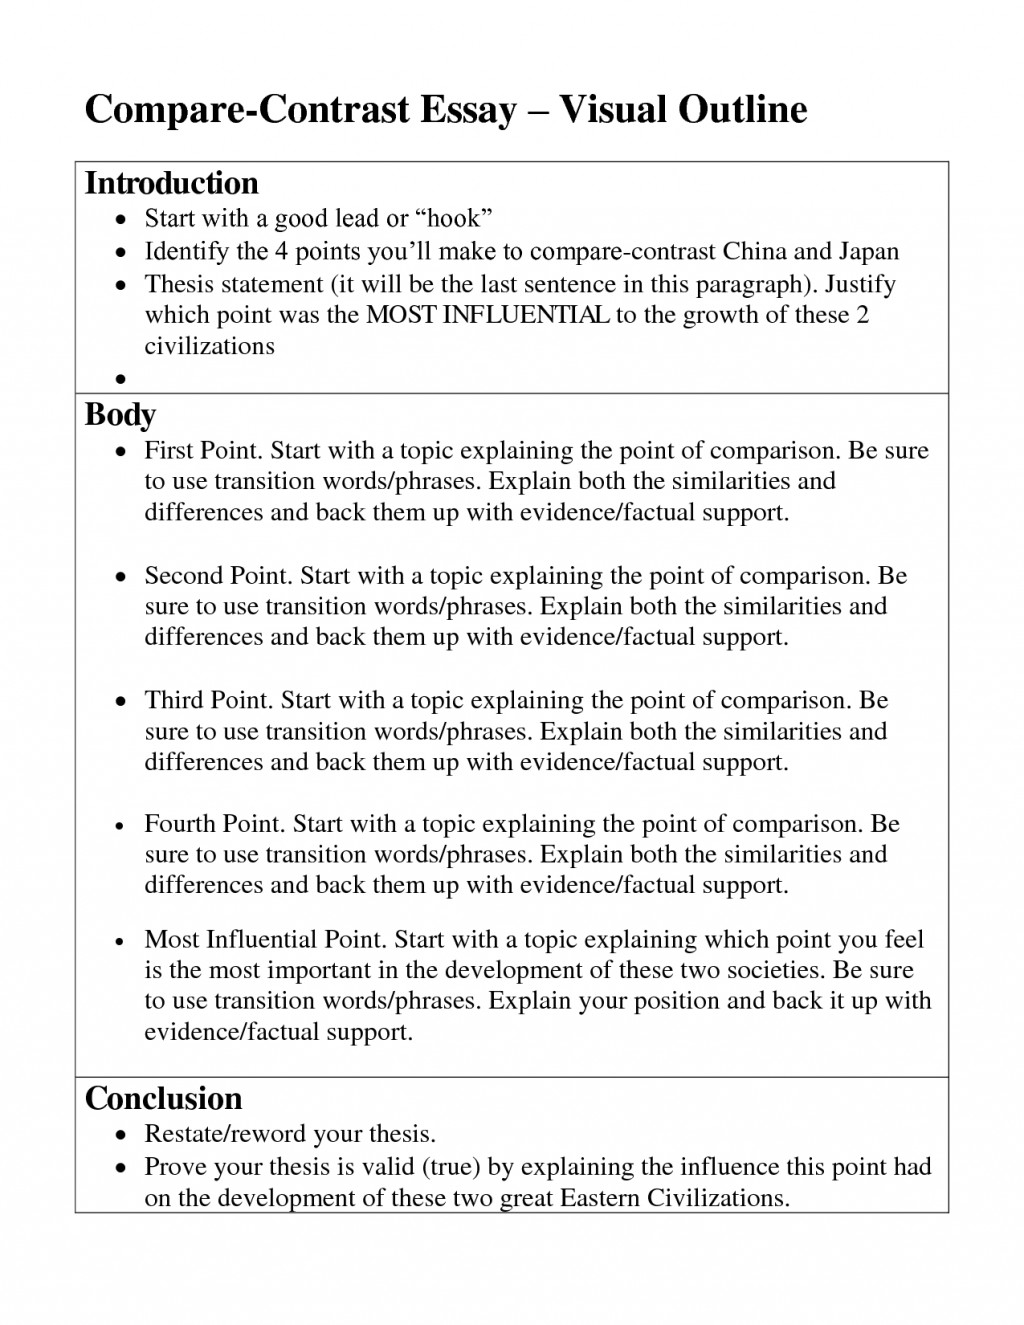 015 Comparison And Contrast Essay Top Rated Writing Service In Compare Format Template Introduction Research Best Paper Paragraph For Large